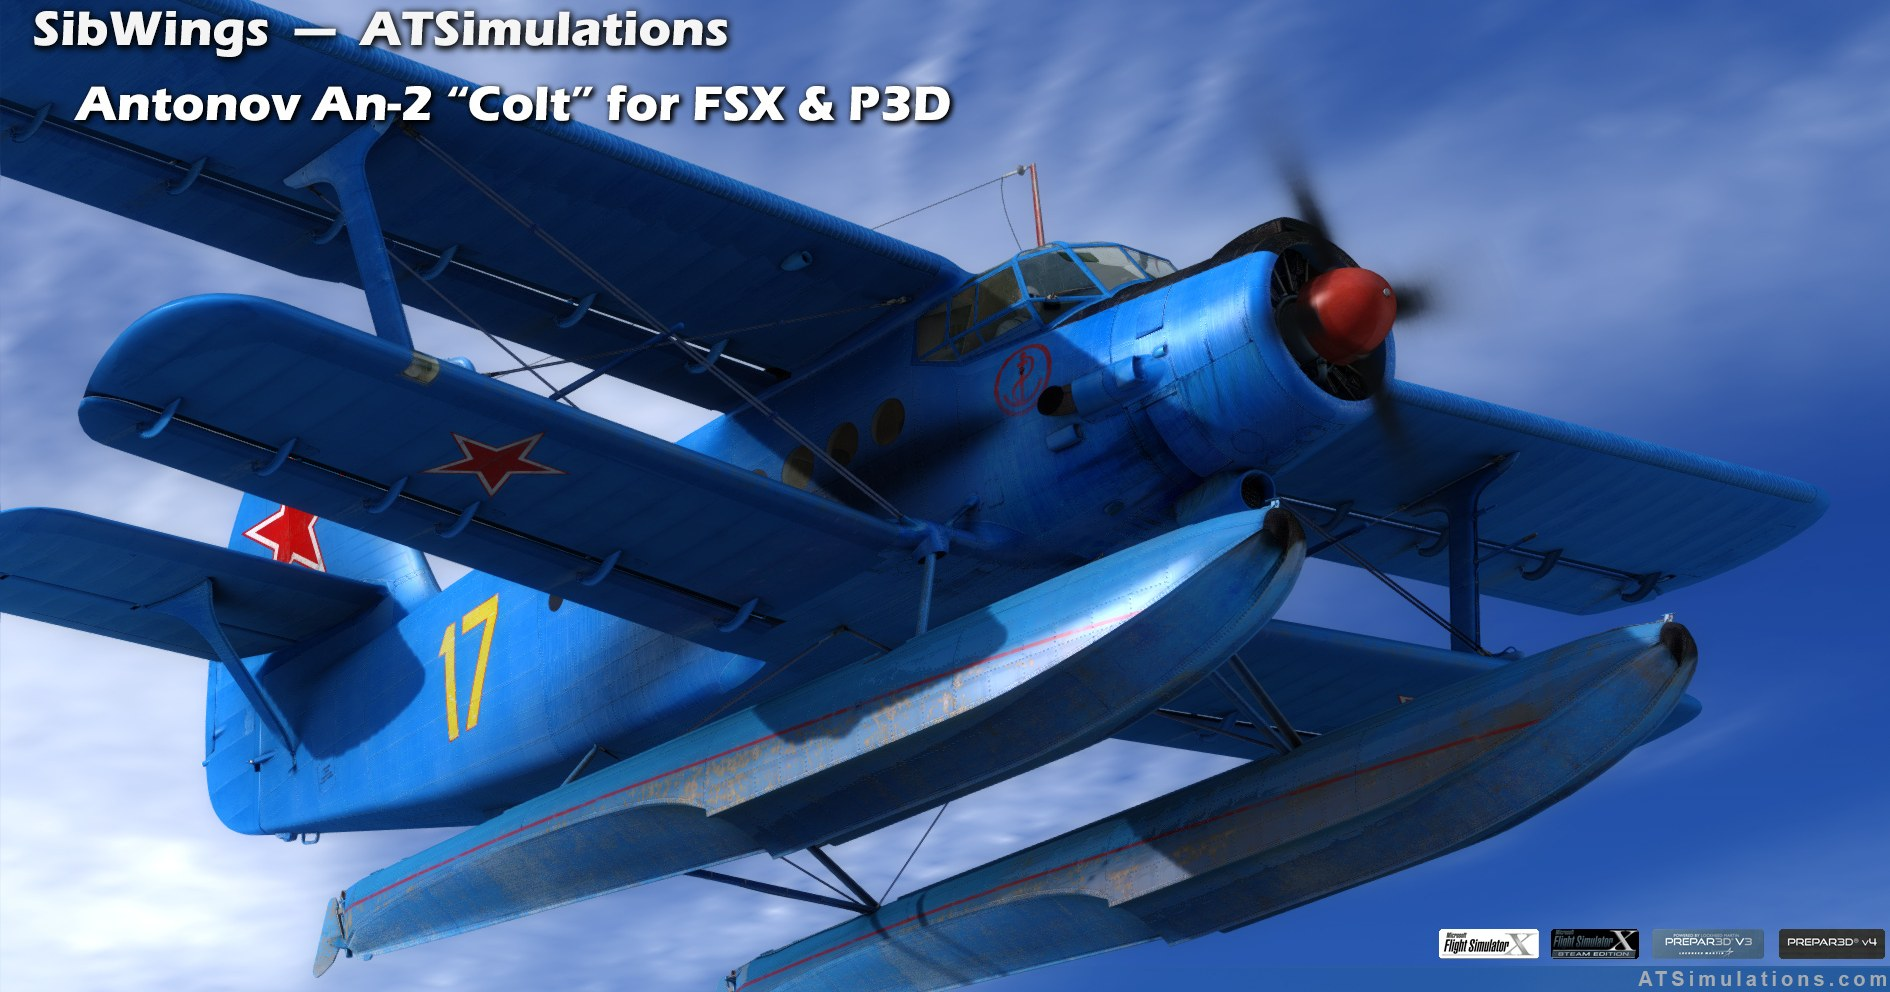 The upcoming update for the SibWings An-2 by ATSimulations